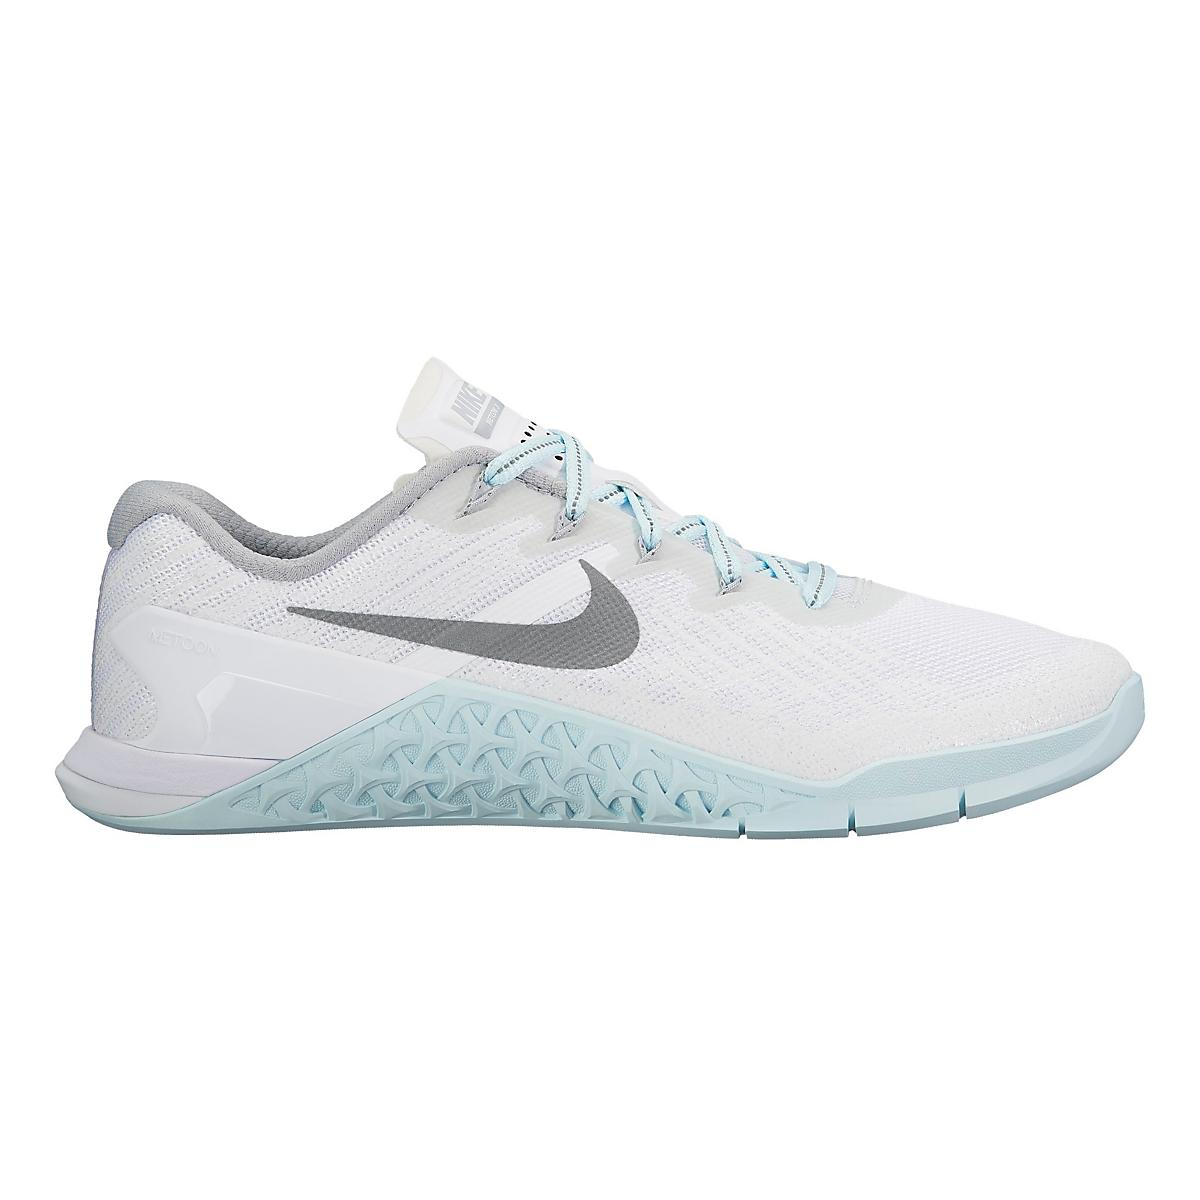 womens nike metcon 3 reflect cross training shoe at road. Black Bedroom Furniture Sets. Home Design Ideas